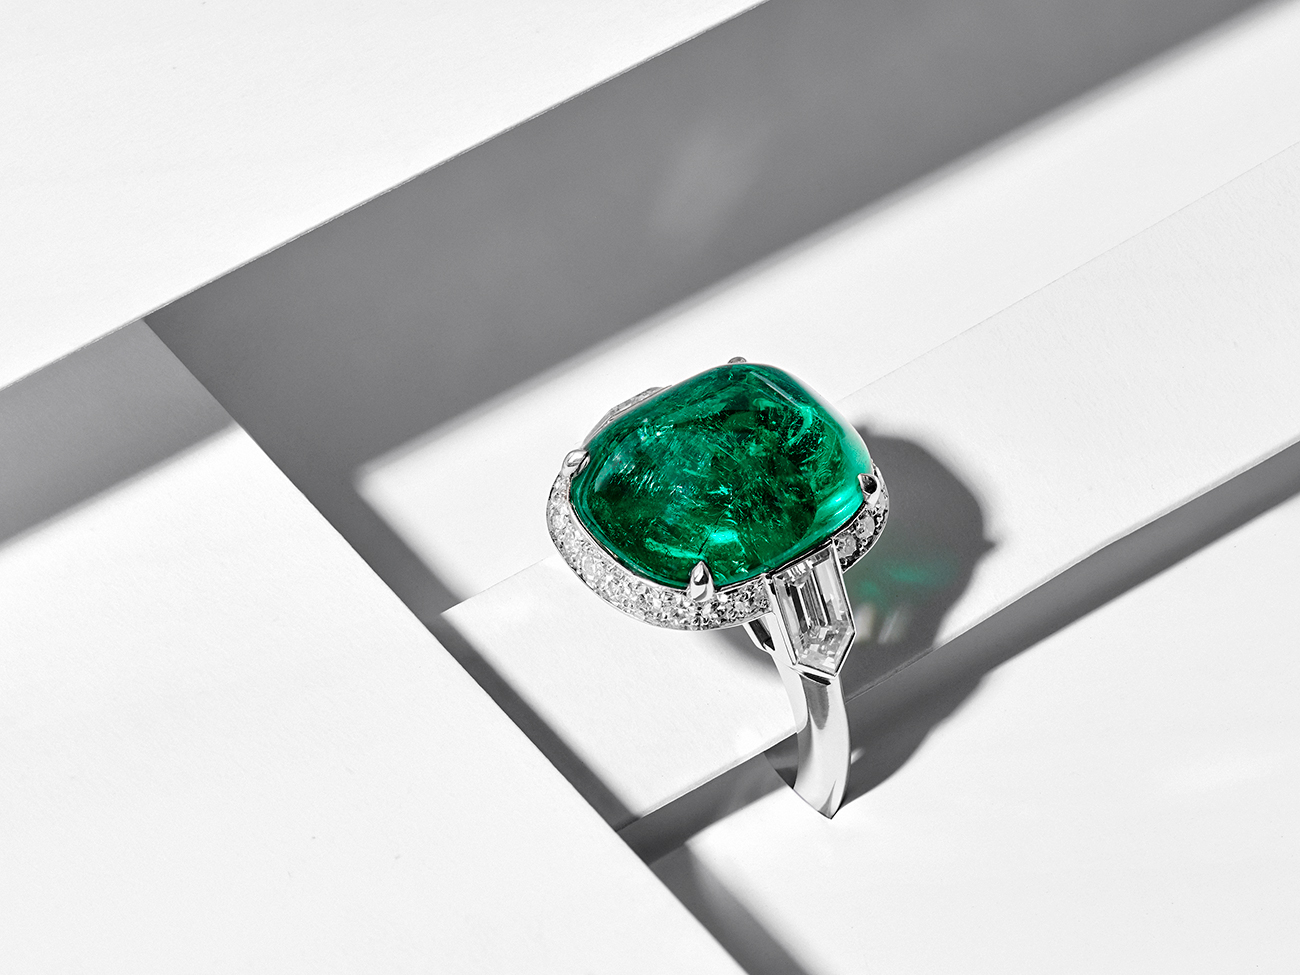 Hancocks 8.59 Carat Sugar loaf Cabochon Colombian Emerald Ring with Diamond Halo